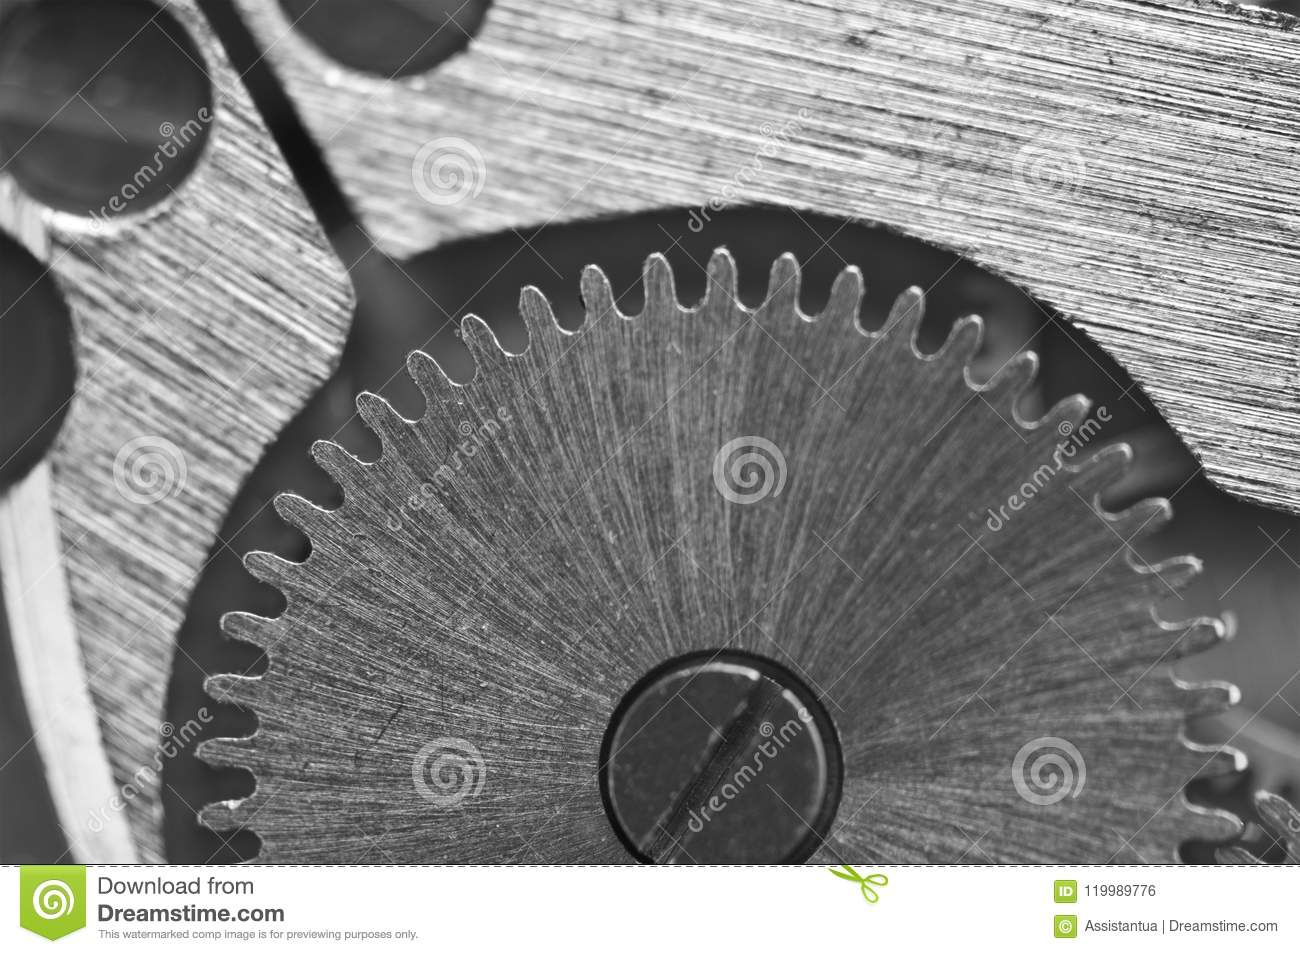 Macro. Black and white background with metal cogwheels close-up